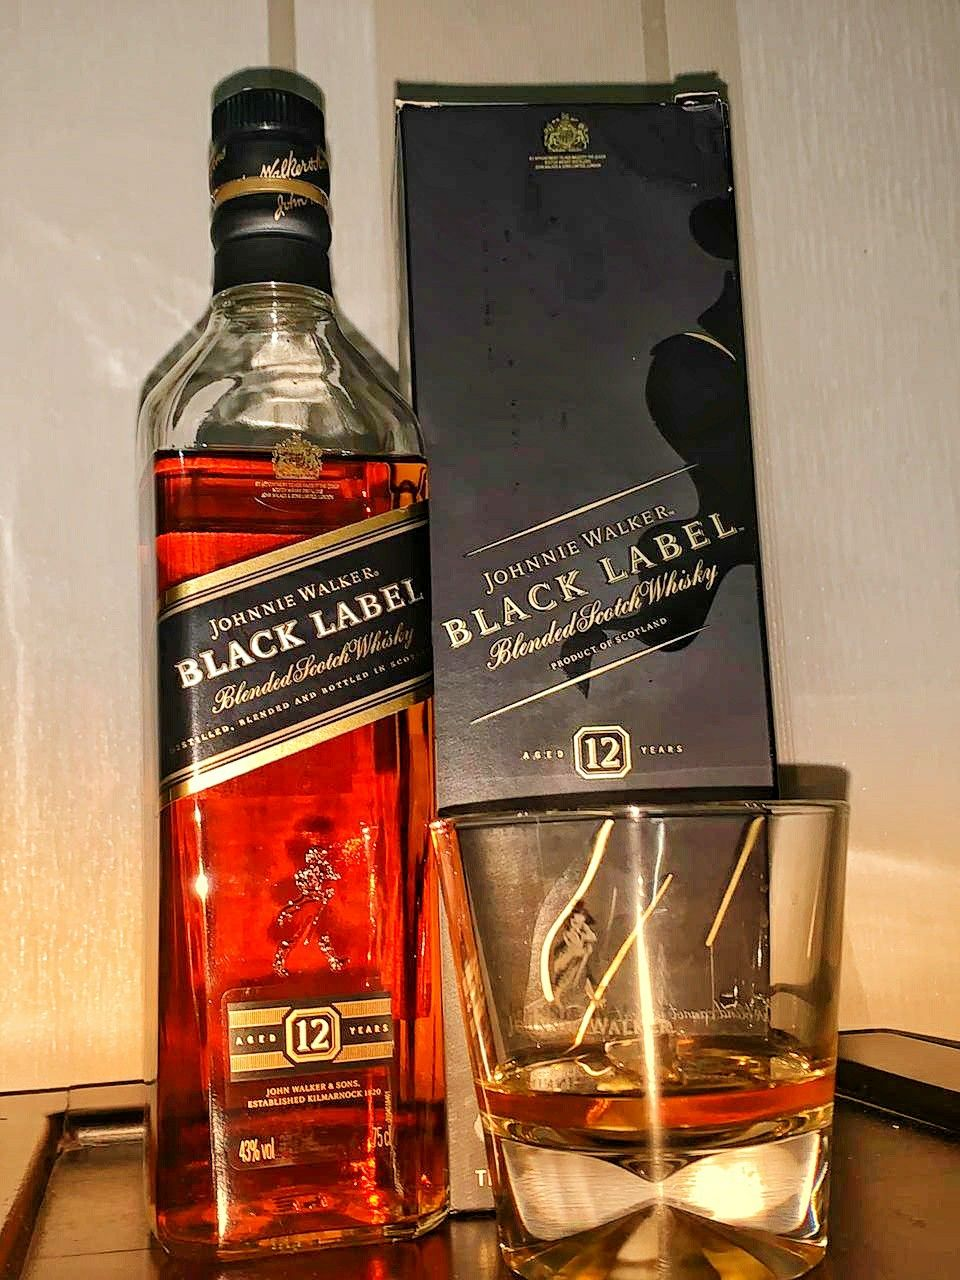 Beautiful bottle of black label #johnniewalker #jw #blacklabel #scotchscentuary #blendedscotch #scotch